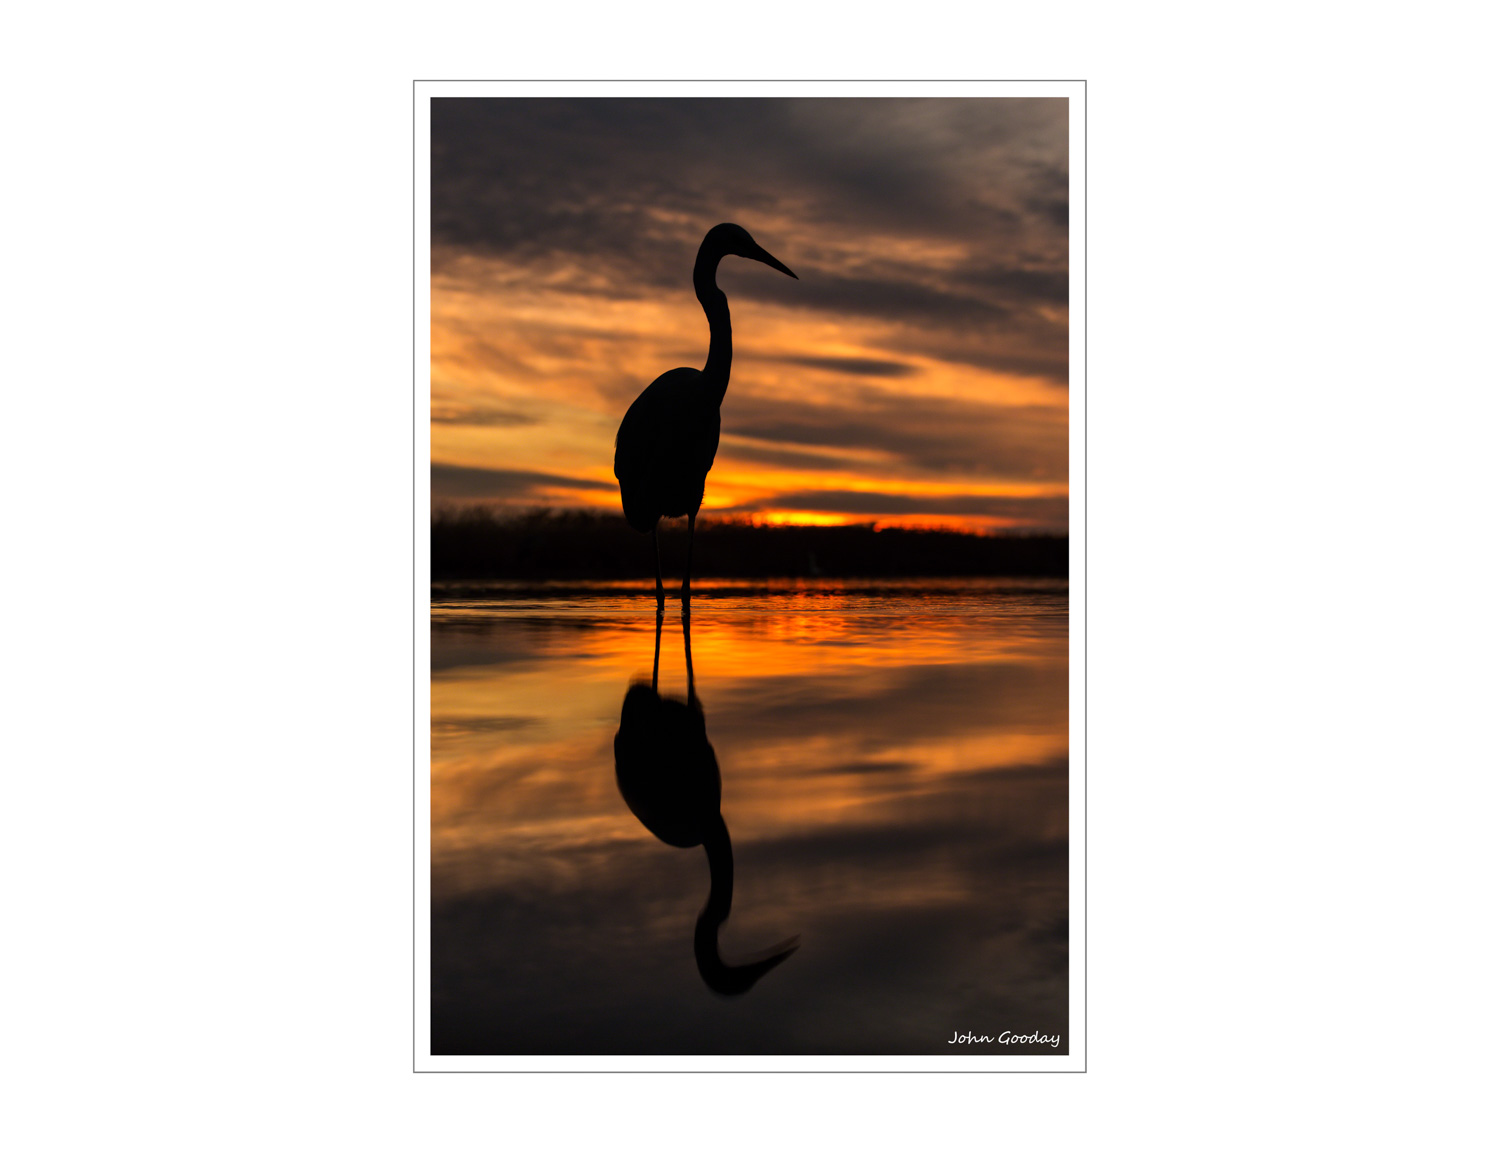 (Image: Great Egret at sunset. Canon EOS 5D Mark III, EF70-200mm f/2.8L IS II, 1/400 sec @ f/4.5, ISO 800, tripod, hide)